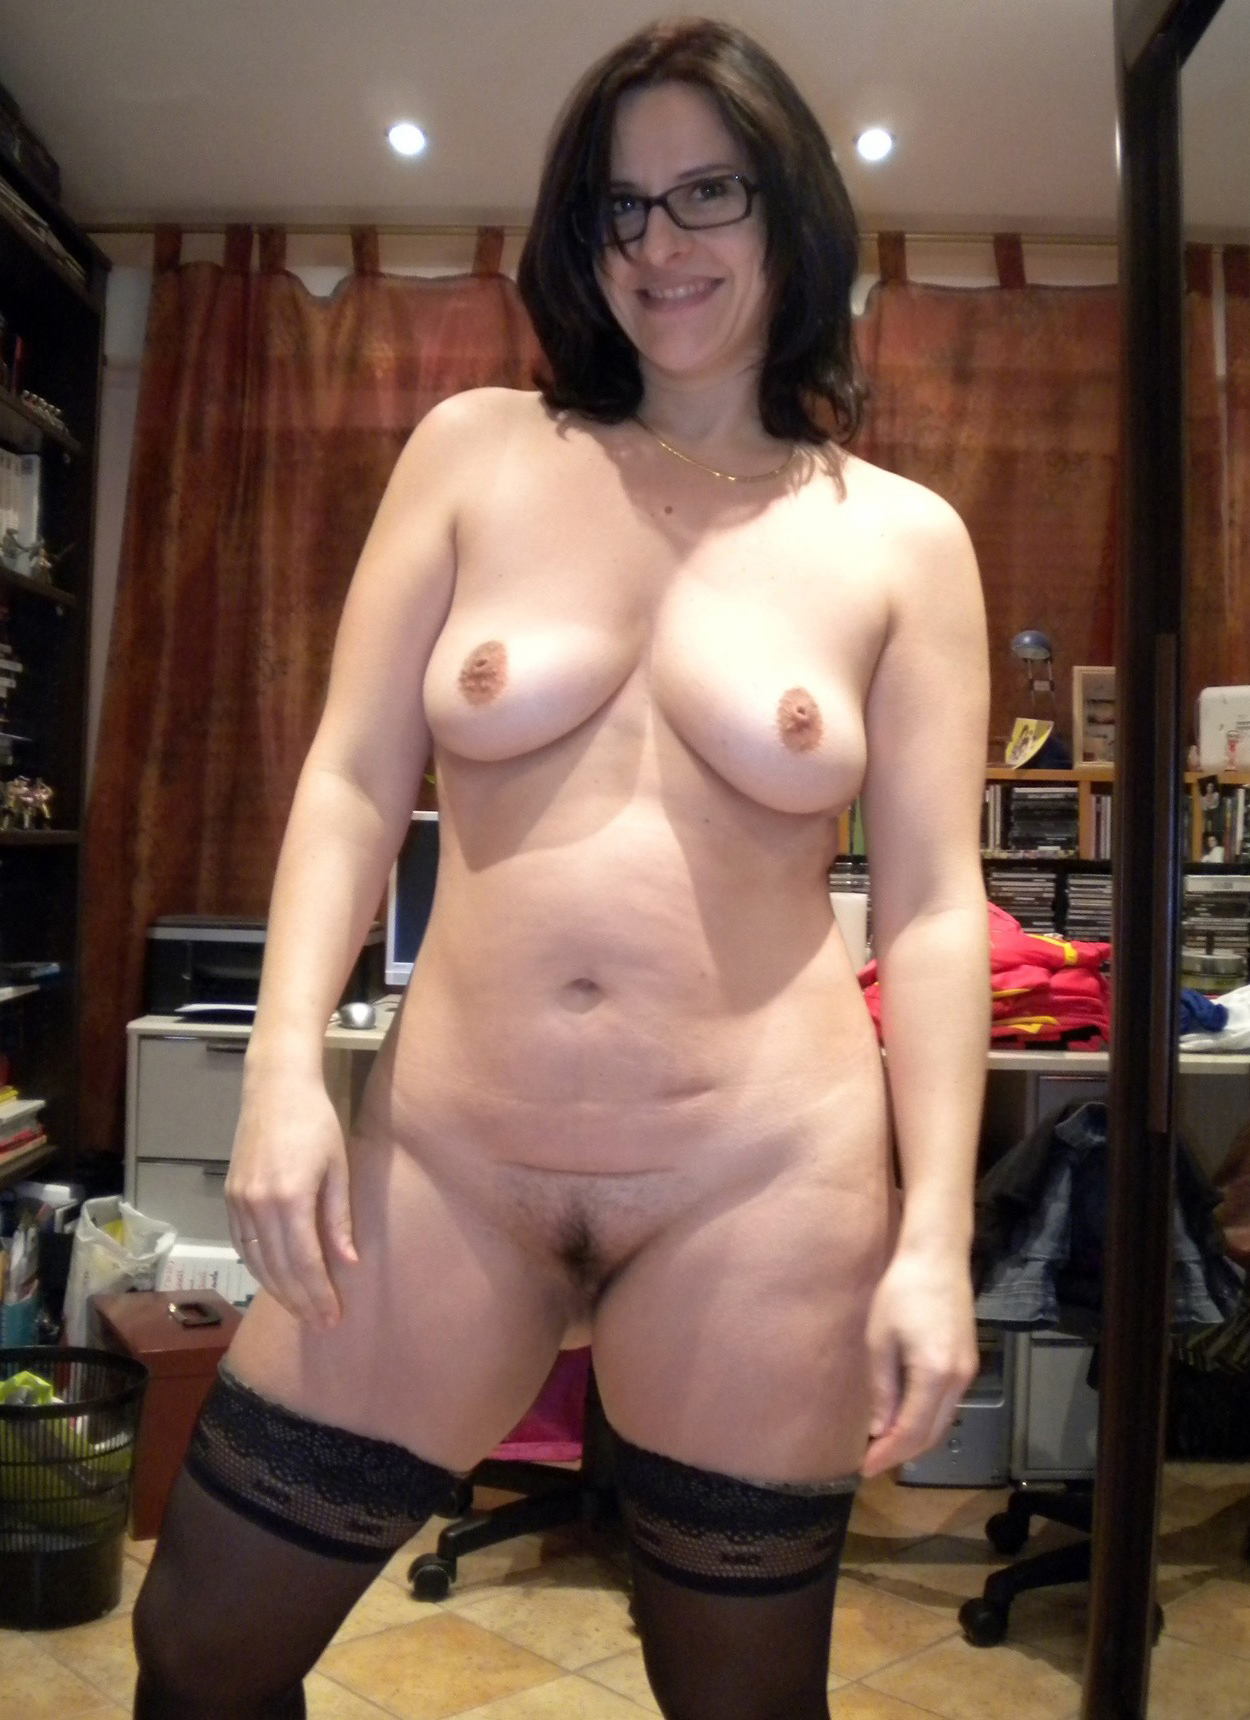 Amateur Mature Porn Gallery showing media & posts for real homemade amateur mature xxx